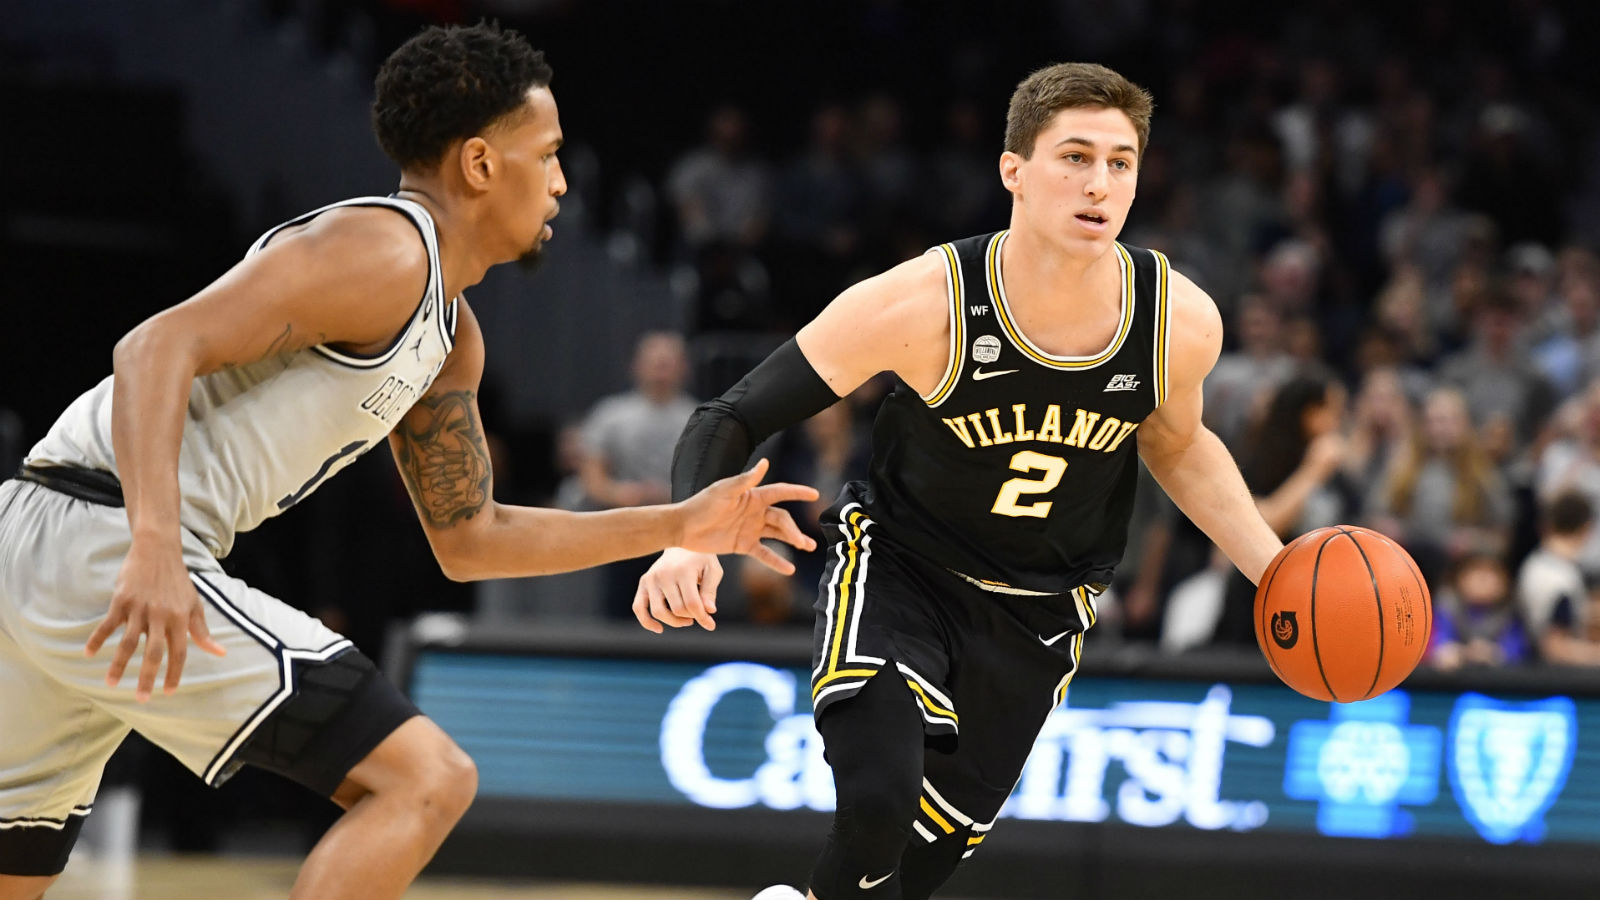 College basketball betting consensus today lem yield 70% binary options system